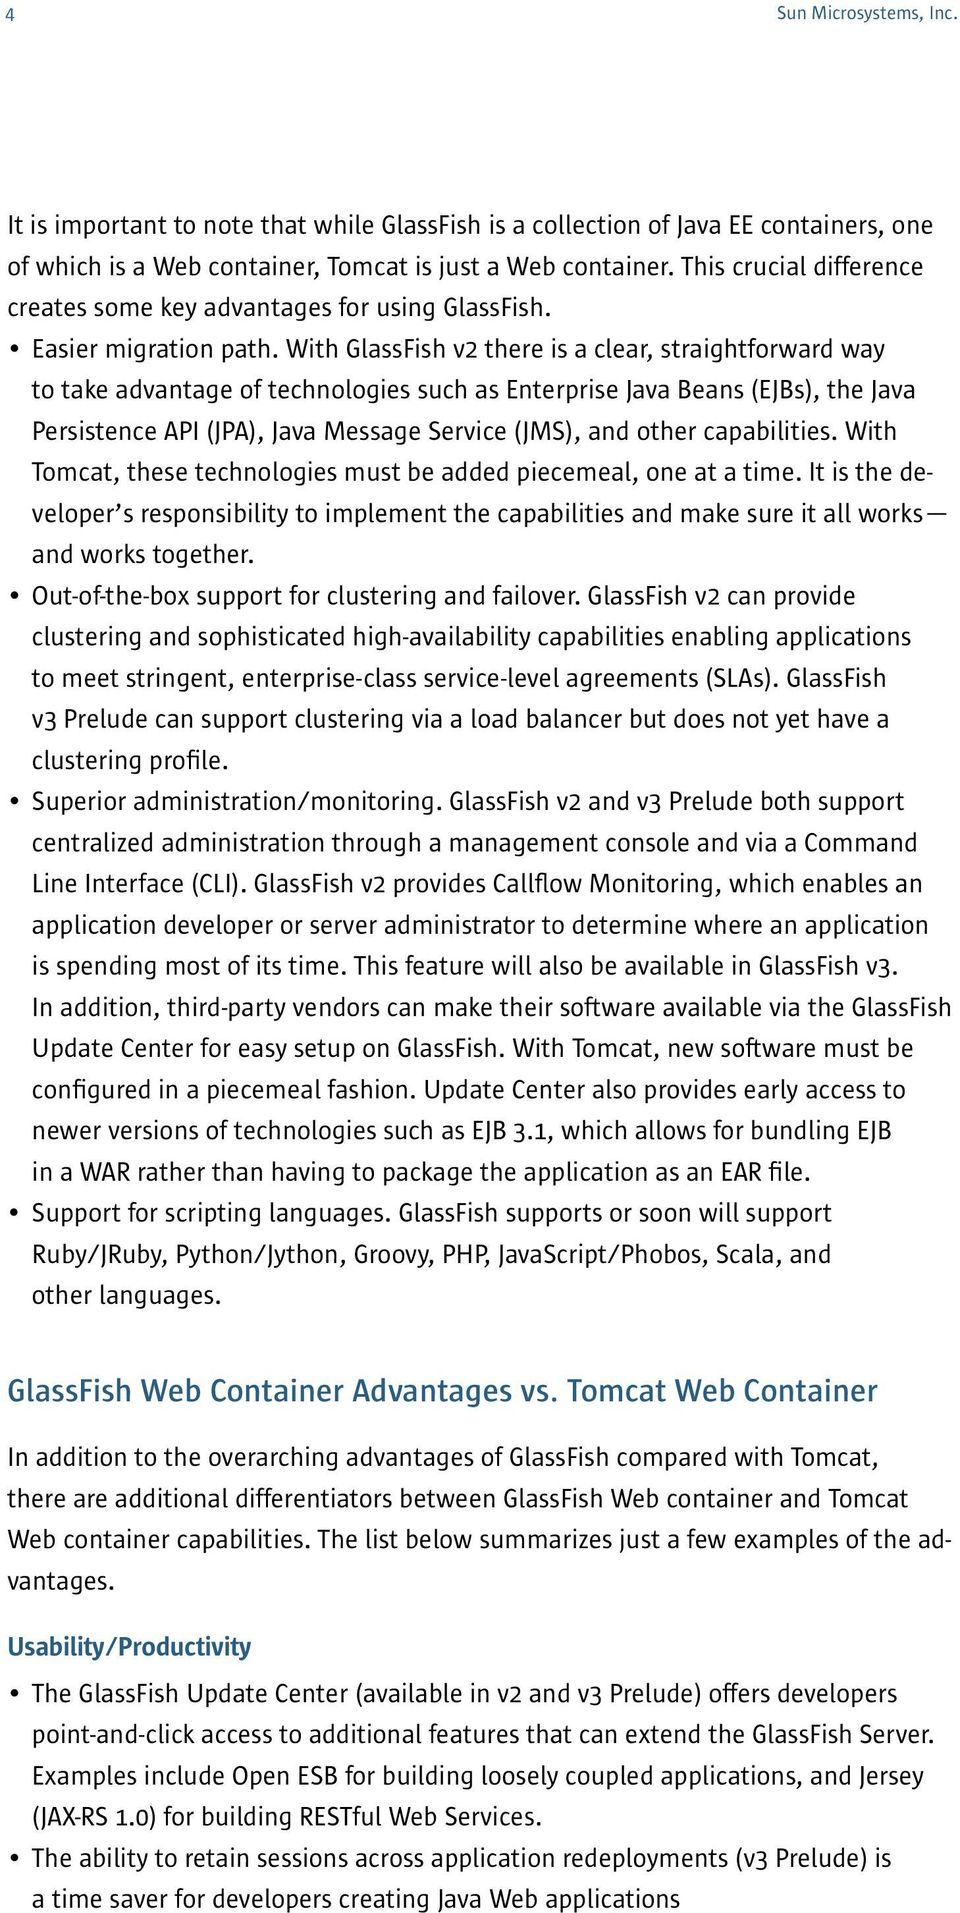 With GlassFish v2 there is a clear, straightforward way to take advantage of technologies such as Enterprise Java Beans (EJBs), the Java Persistence API (JPA), Java Message Service (JMS), and other